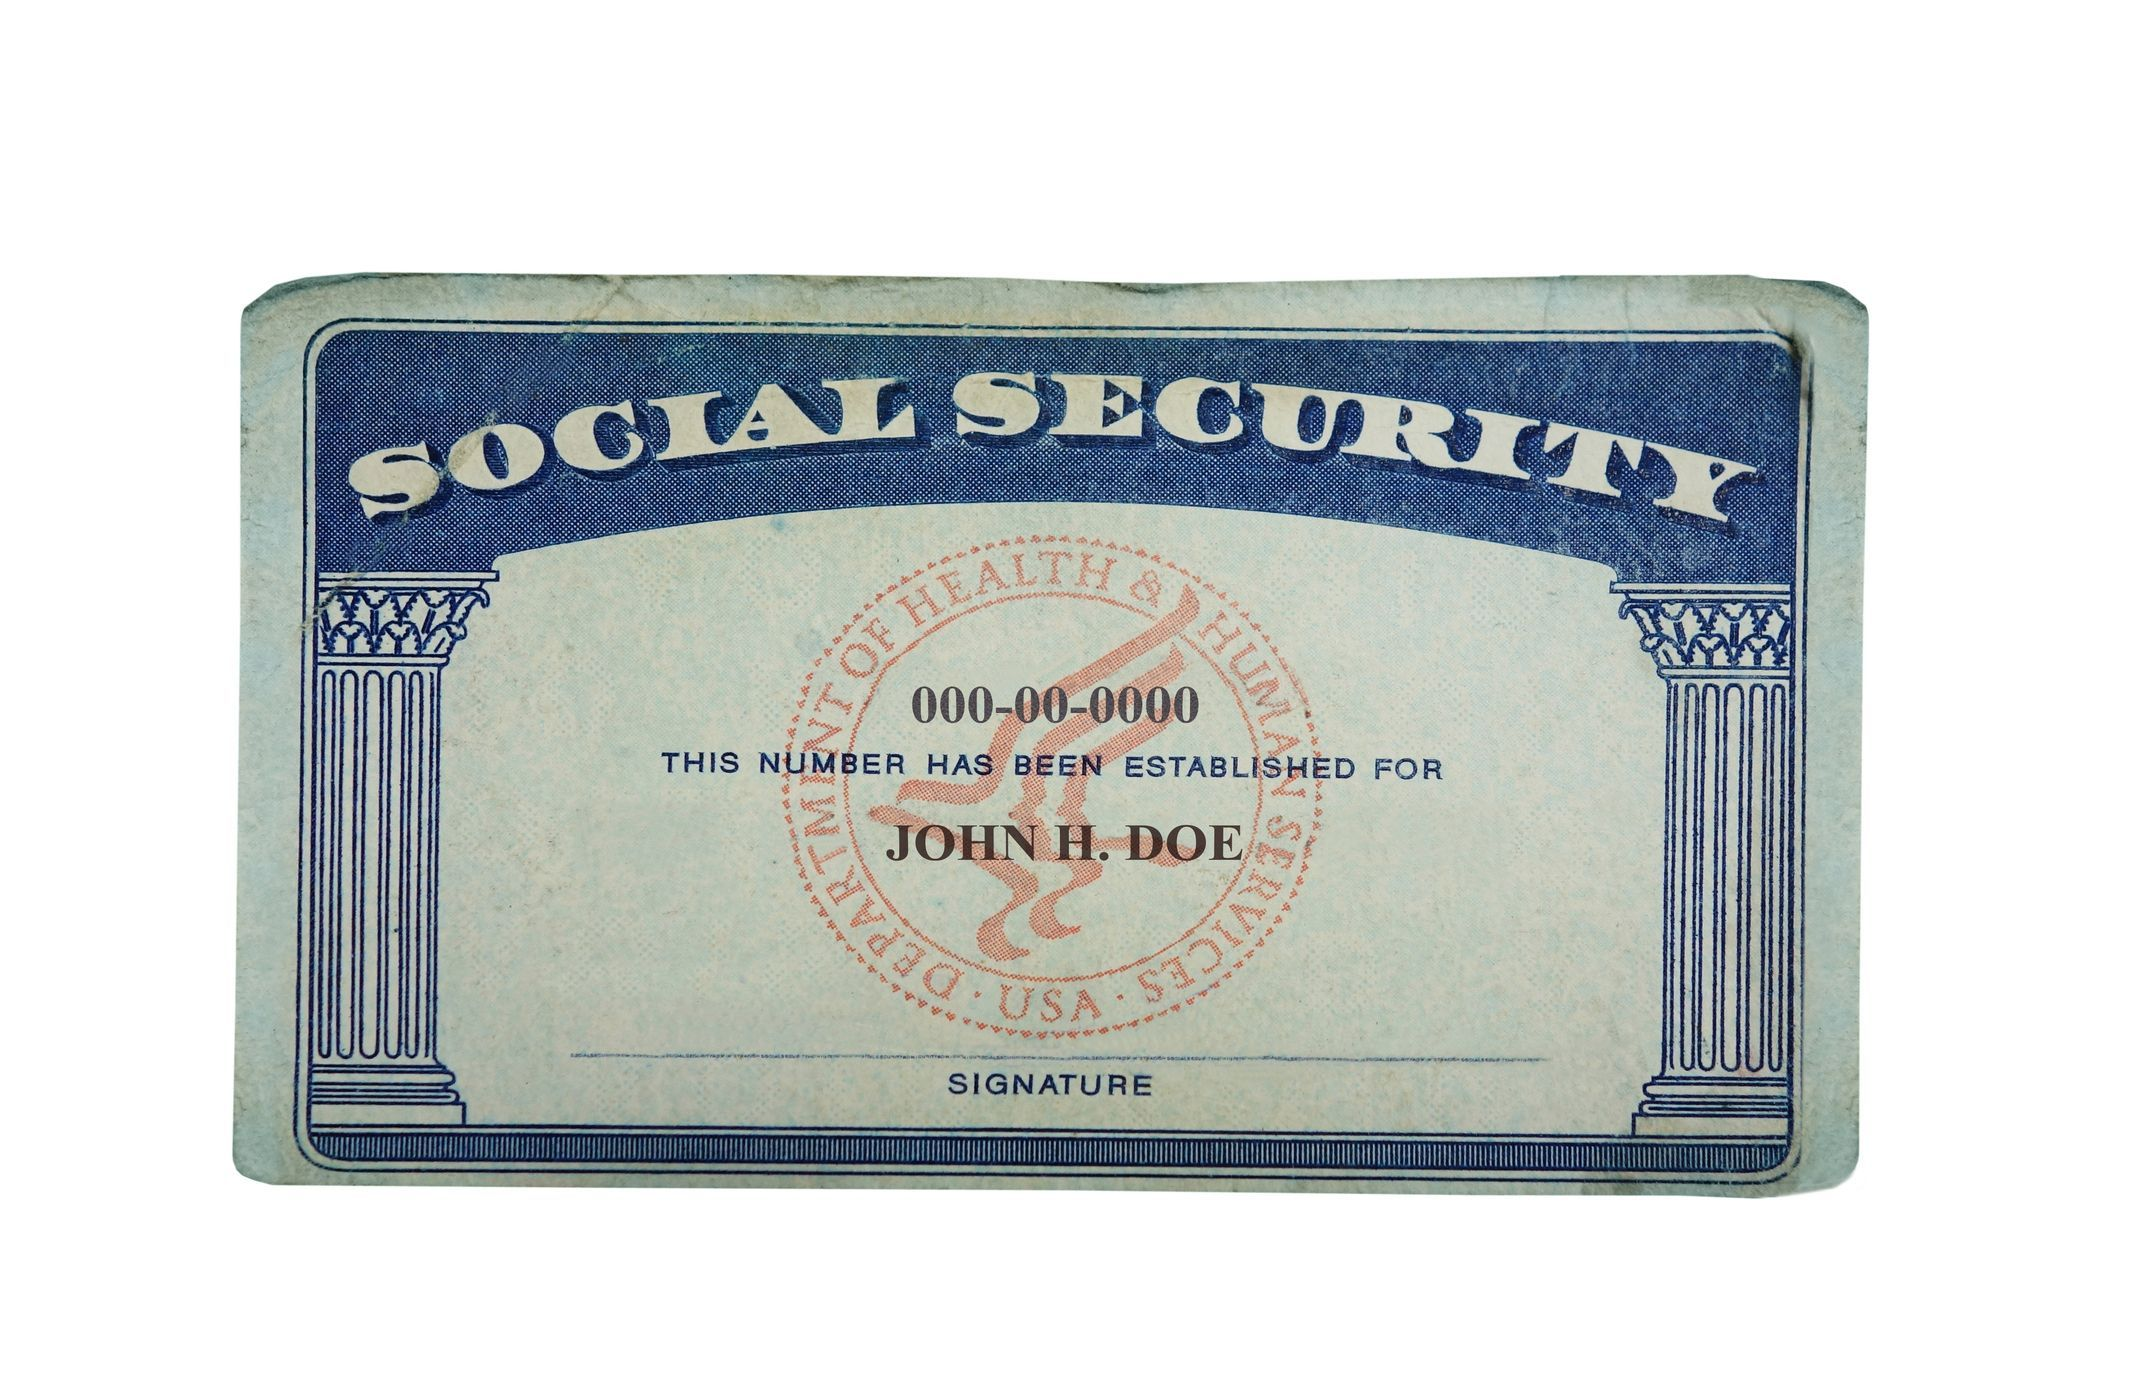 3 Reasons To File For Social Security On Time Social Security Card Social Security Benefits The Motley Fool